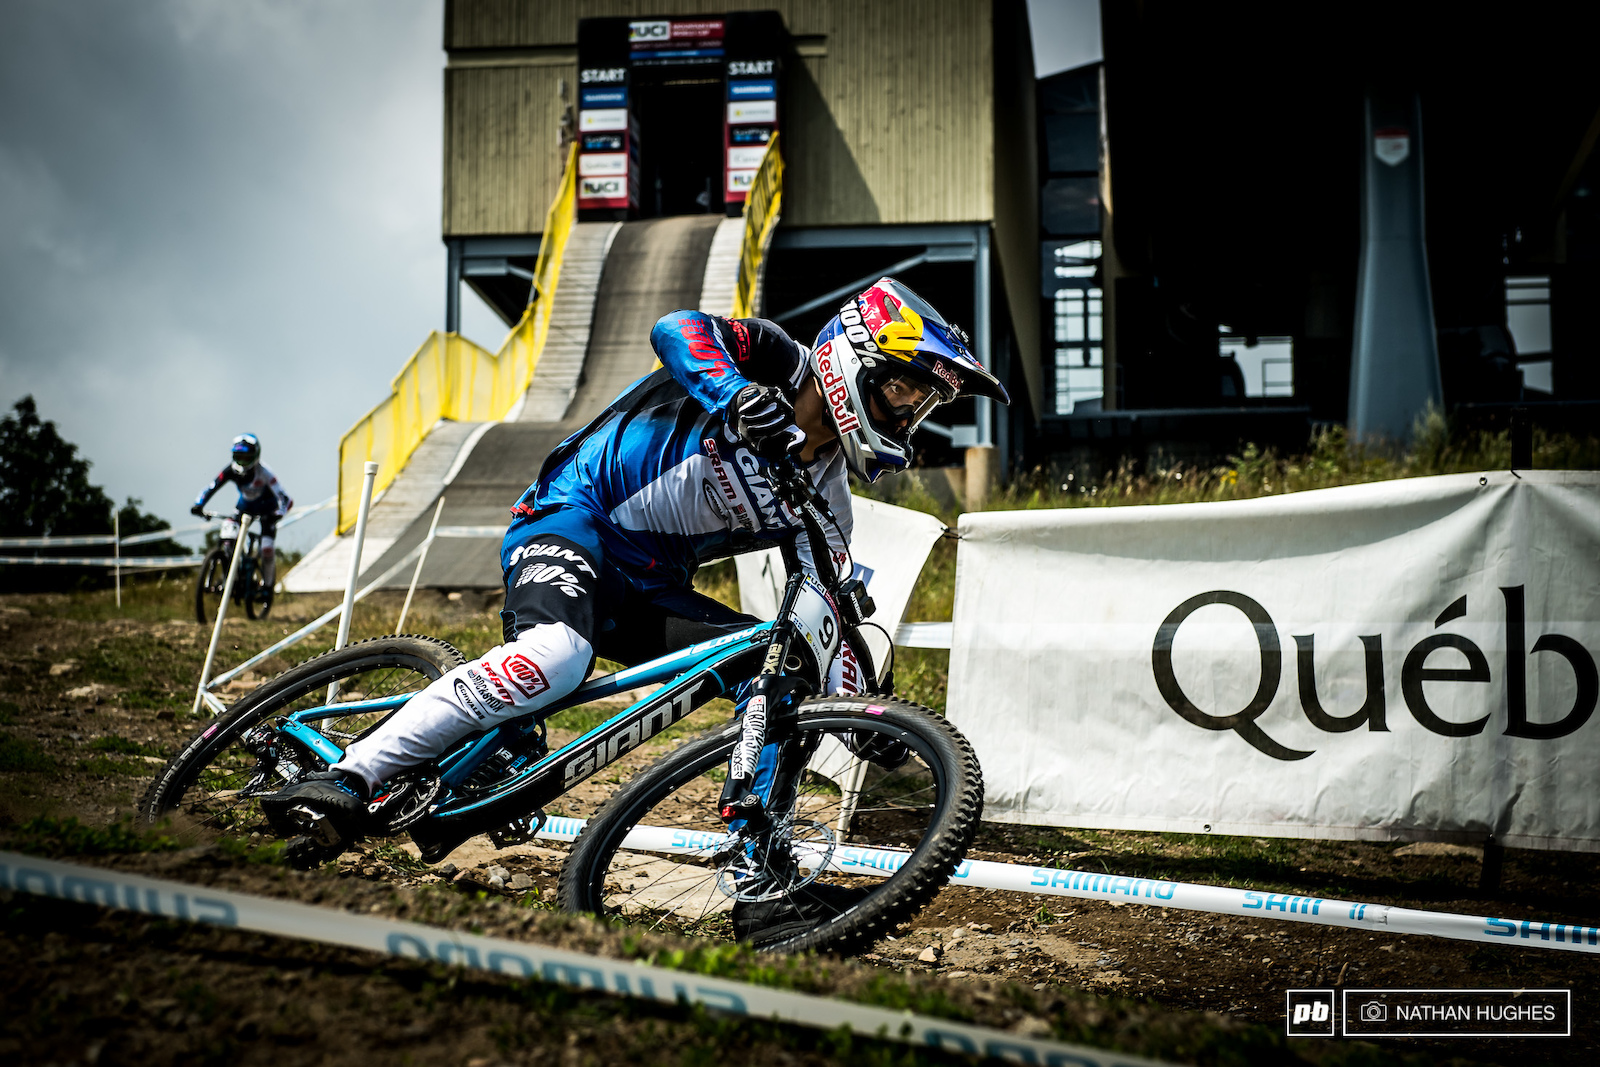 On the podium in 2015 can Colombia s fastest get back on the box and edge further up the ranks